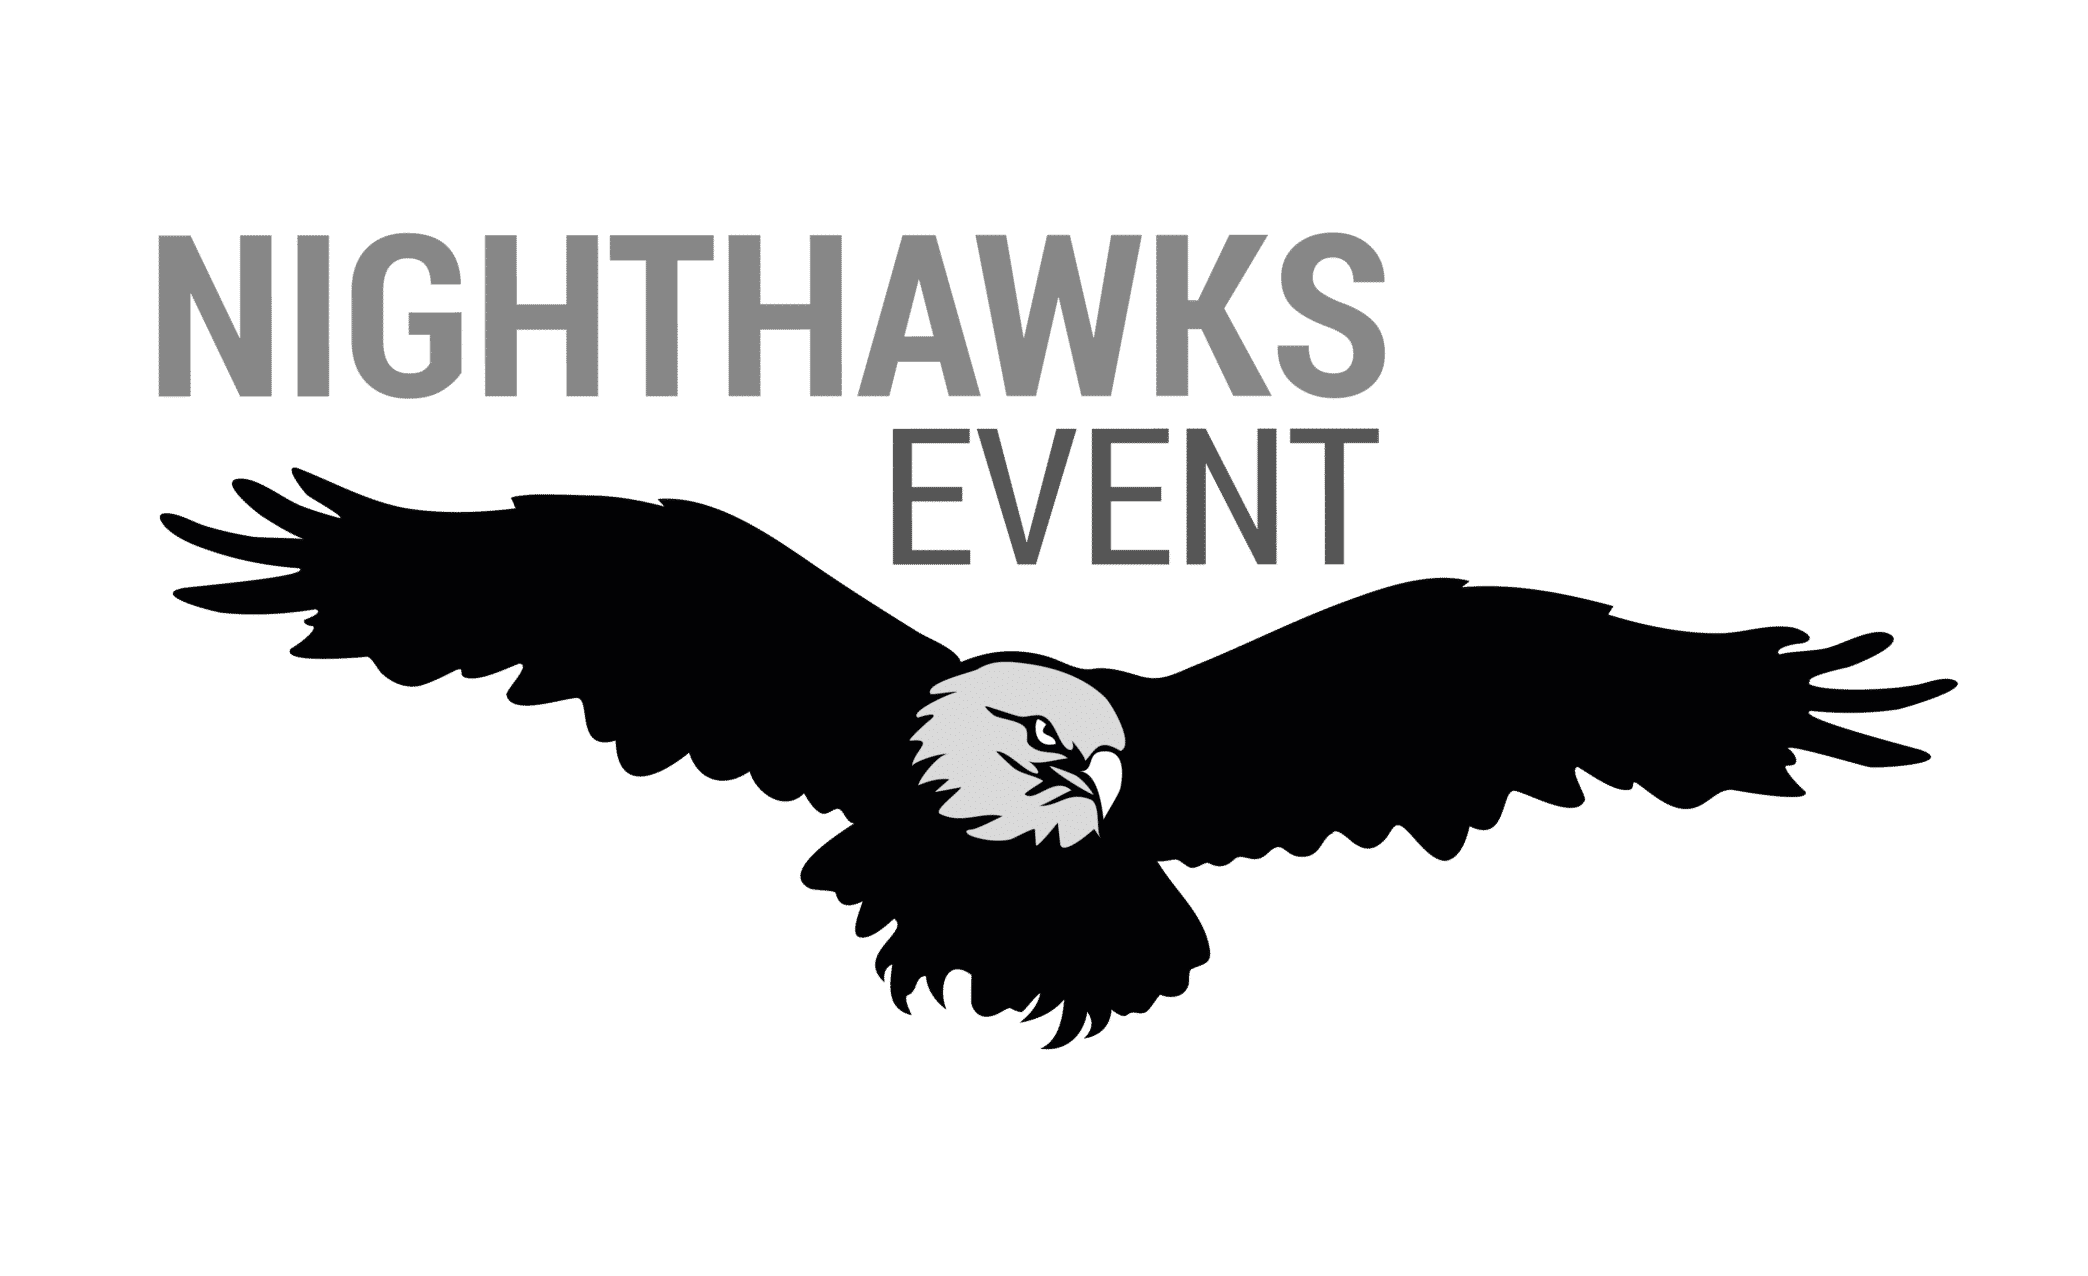 logo nighthawks even - technicien son lumière spectacle